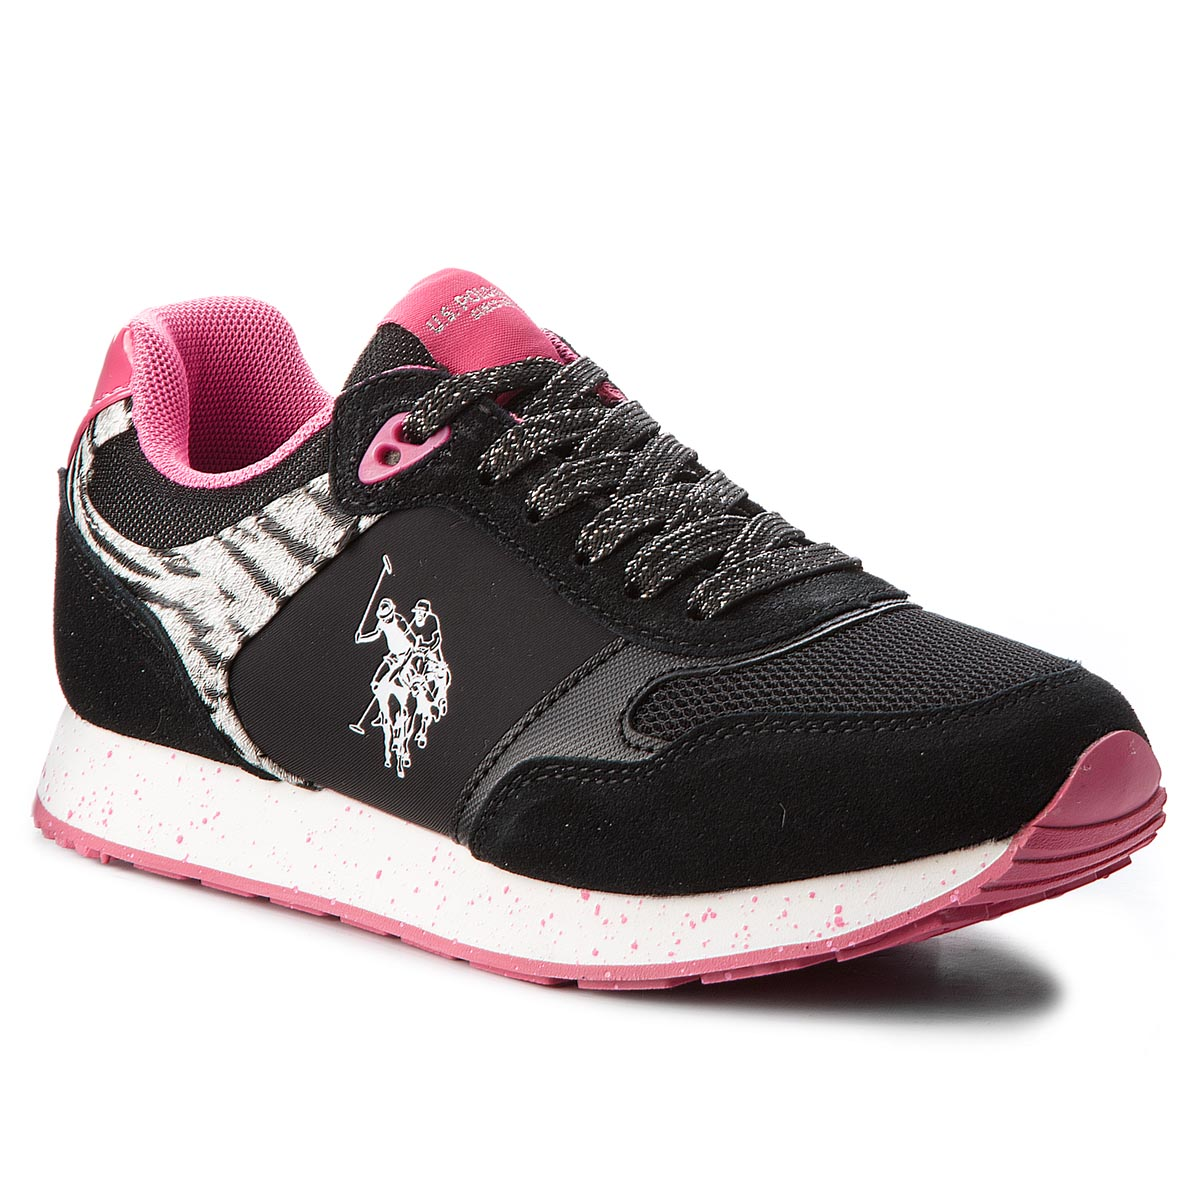 Sneakers U.S. POLO ASSN. - Thea FREE4030S8/LT1 Blk/Fux